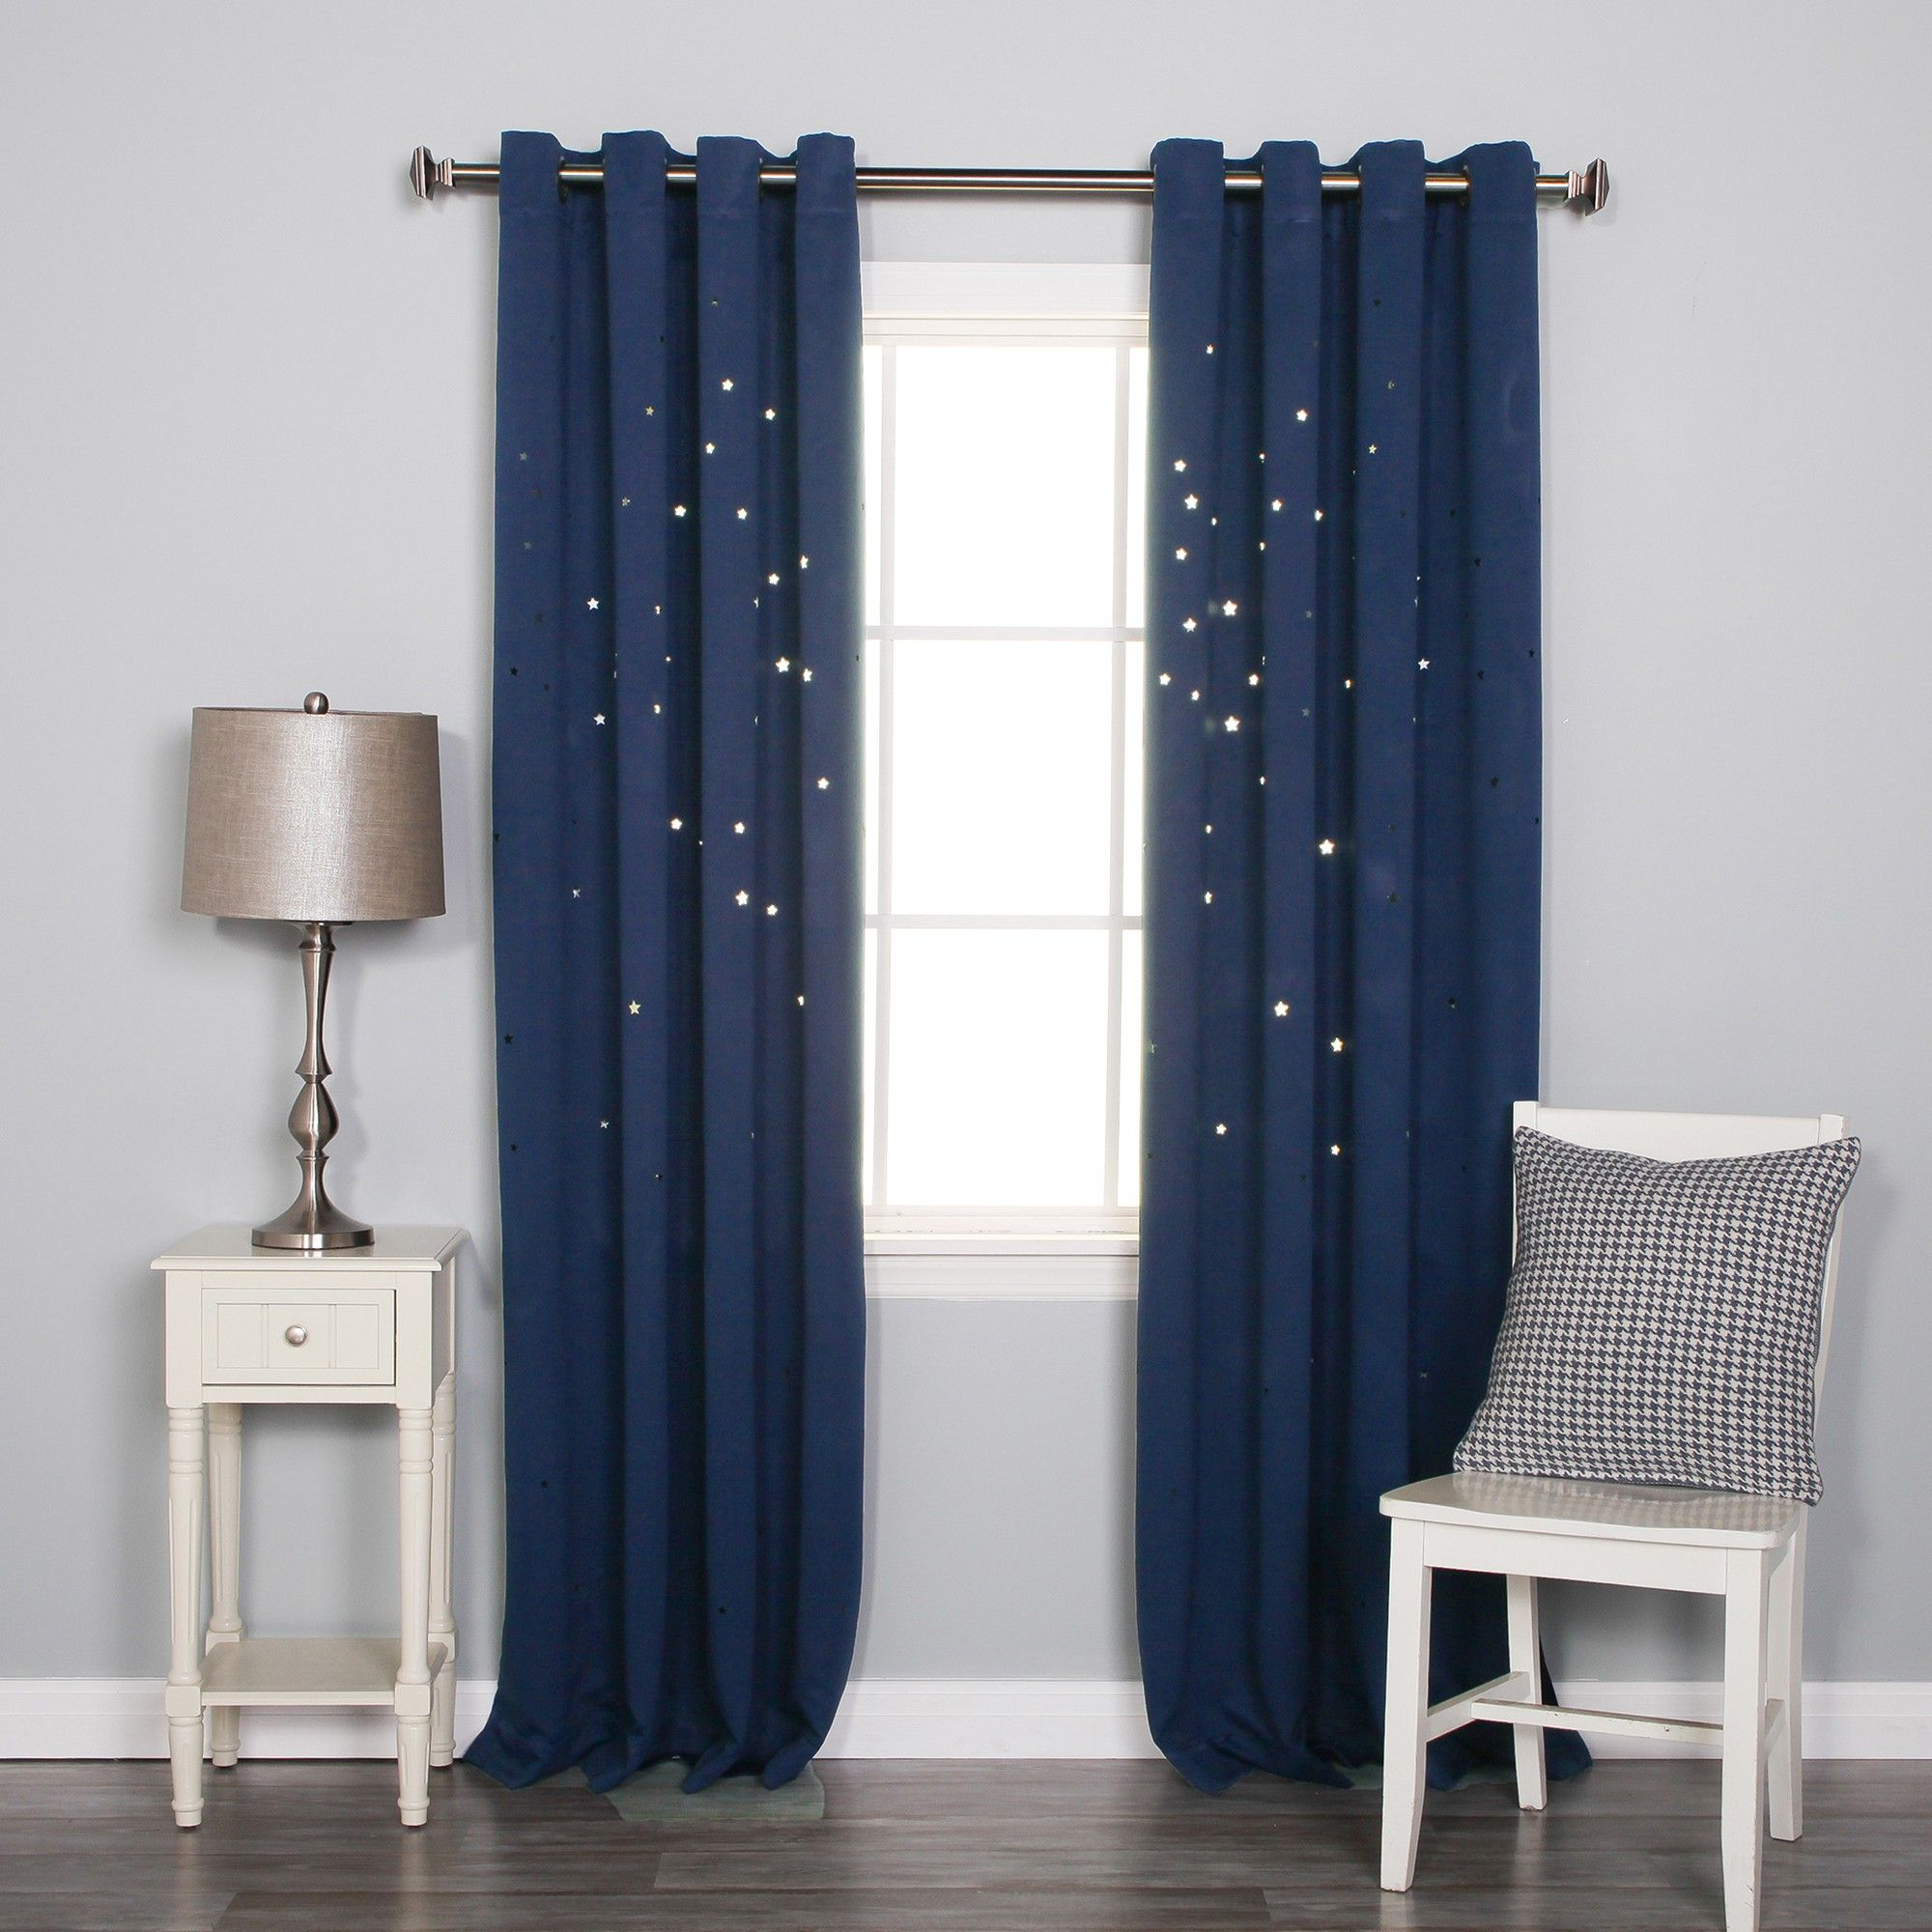 i a beautiful with but love fill drapes certainly these panel velvet cant so giant pin need can my of pile afford soft blue house